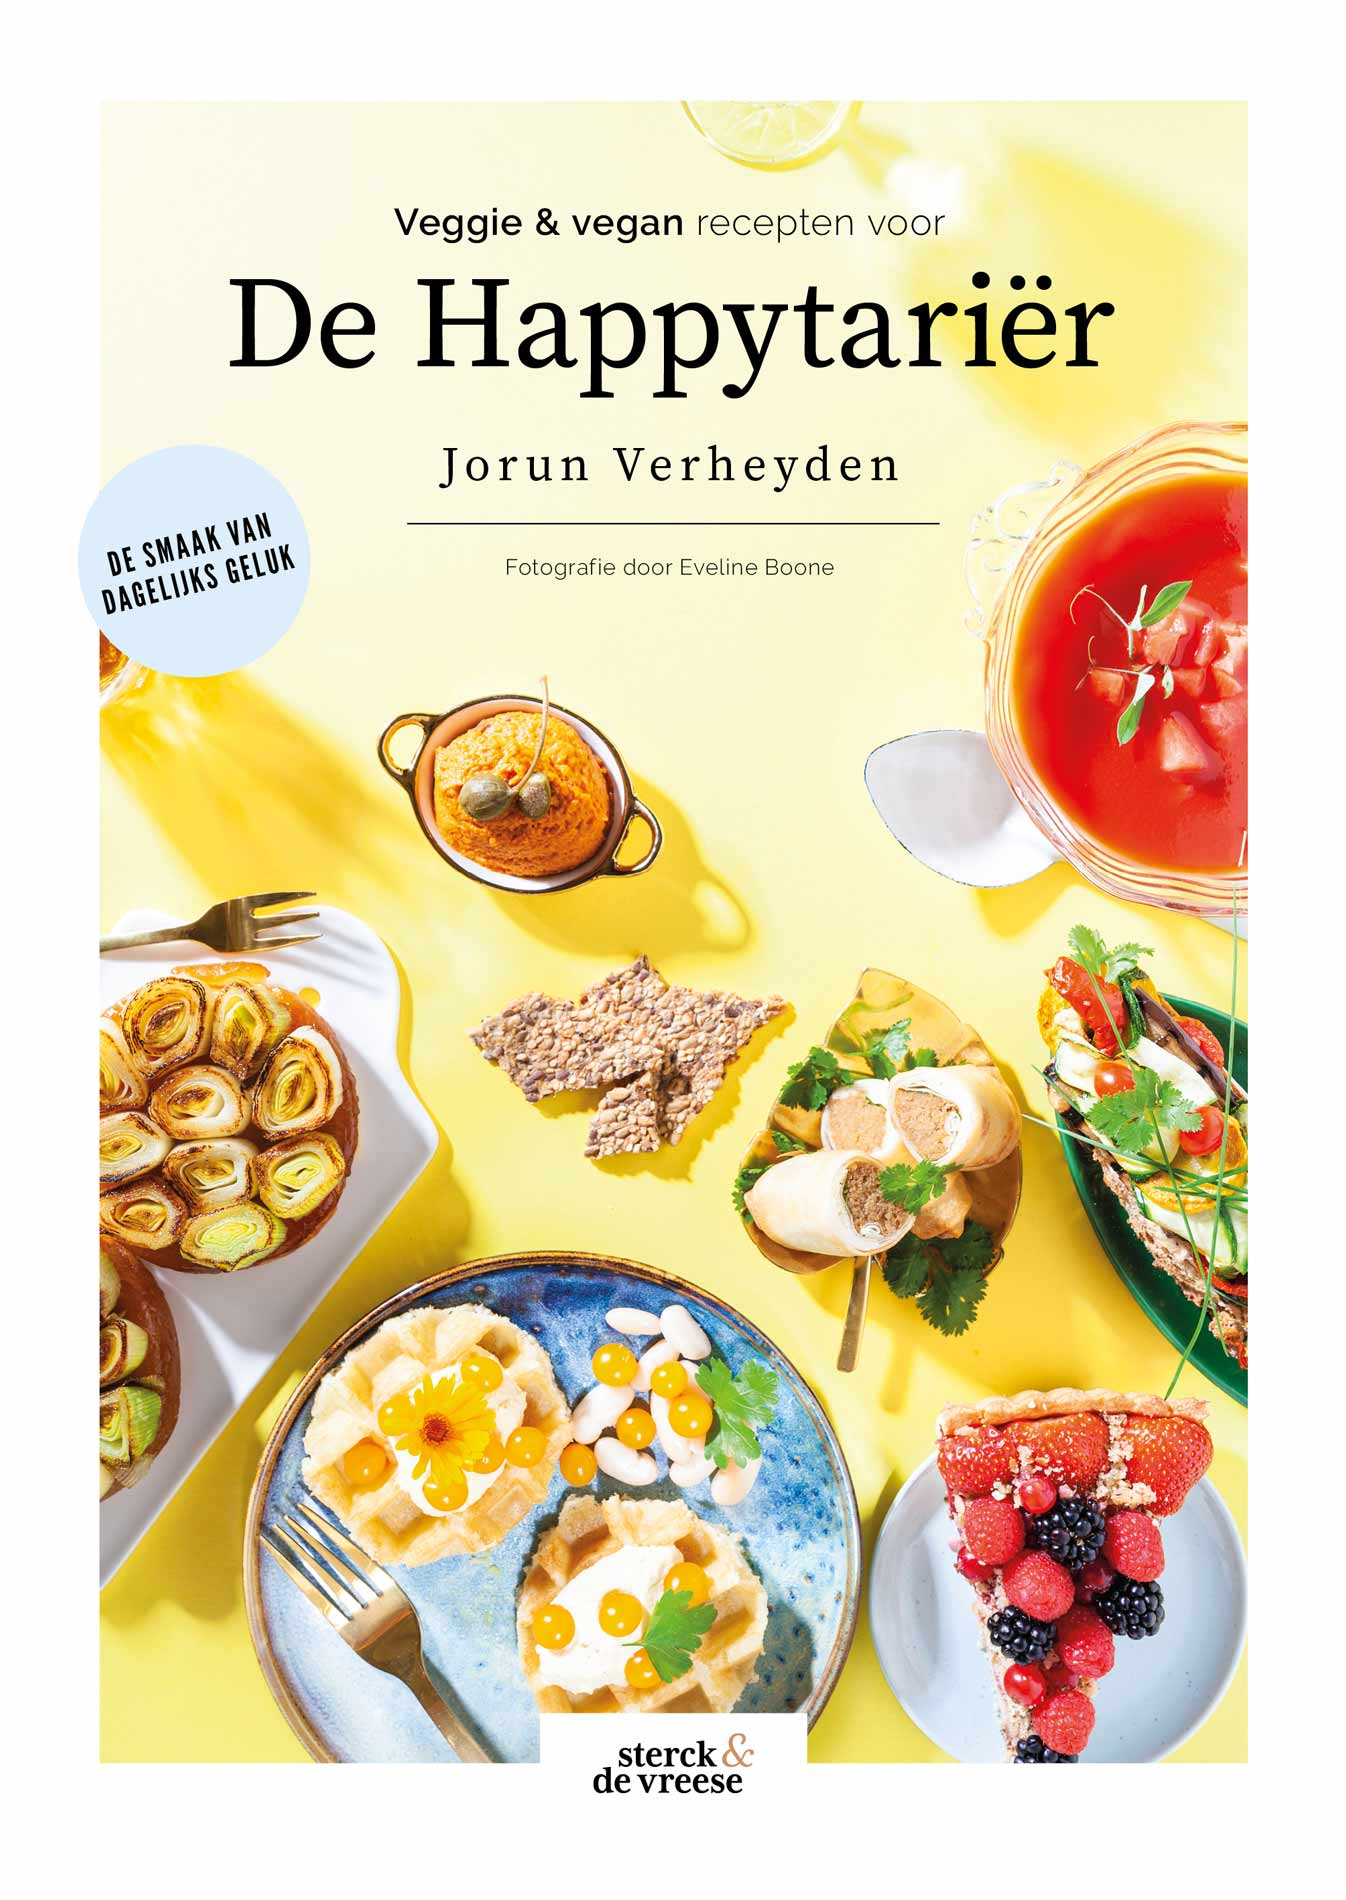 Cookbook cover design of De Happytarier with bright colors and sunny vegetarian food